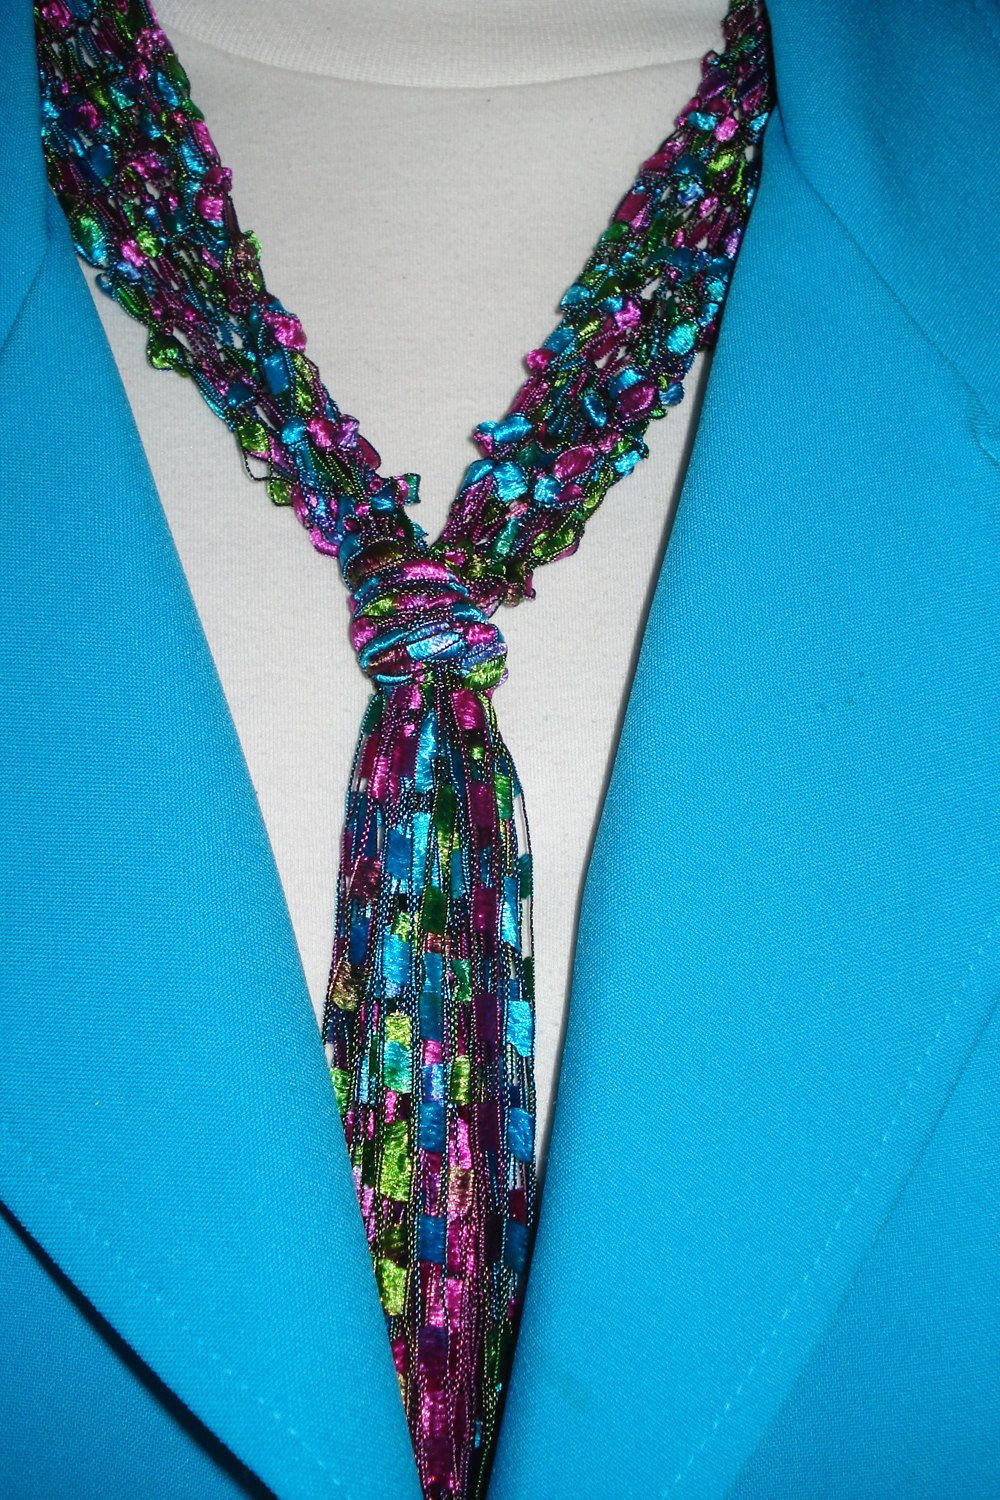 Handknit Necklace Scarf Of Bright Stained Glass Trellis